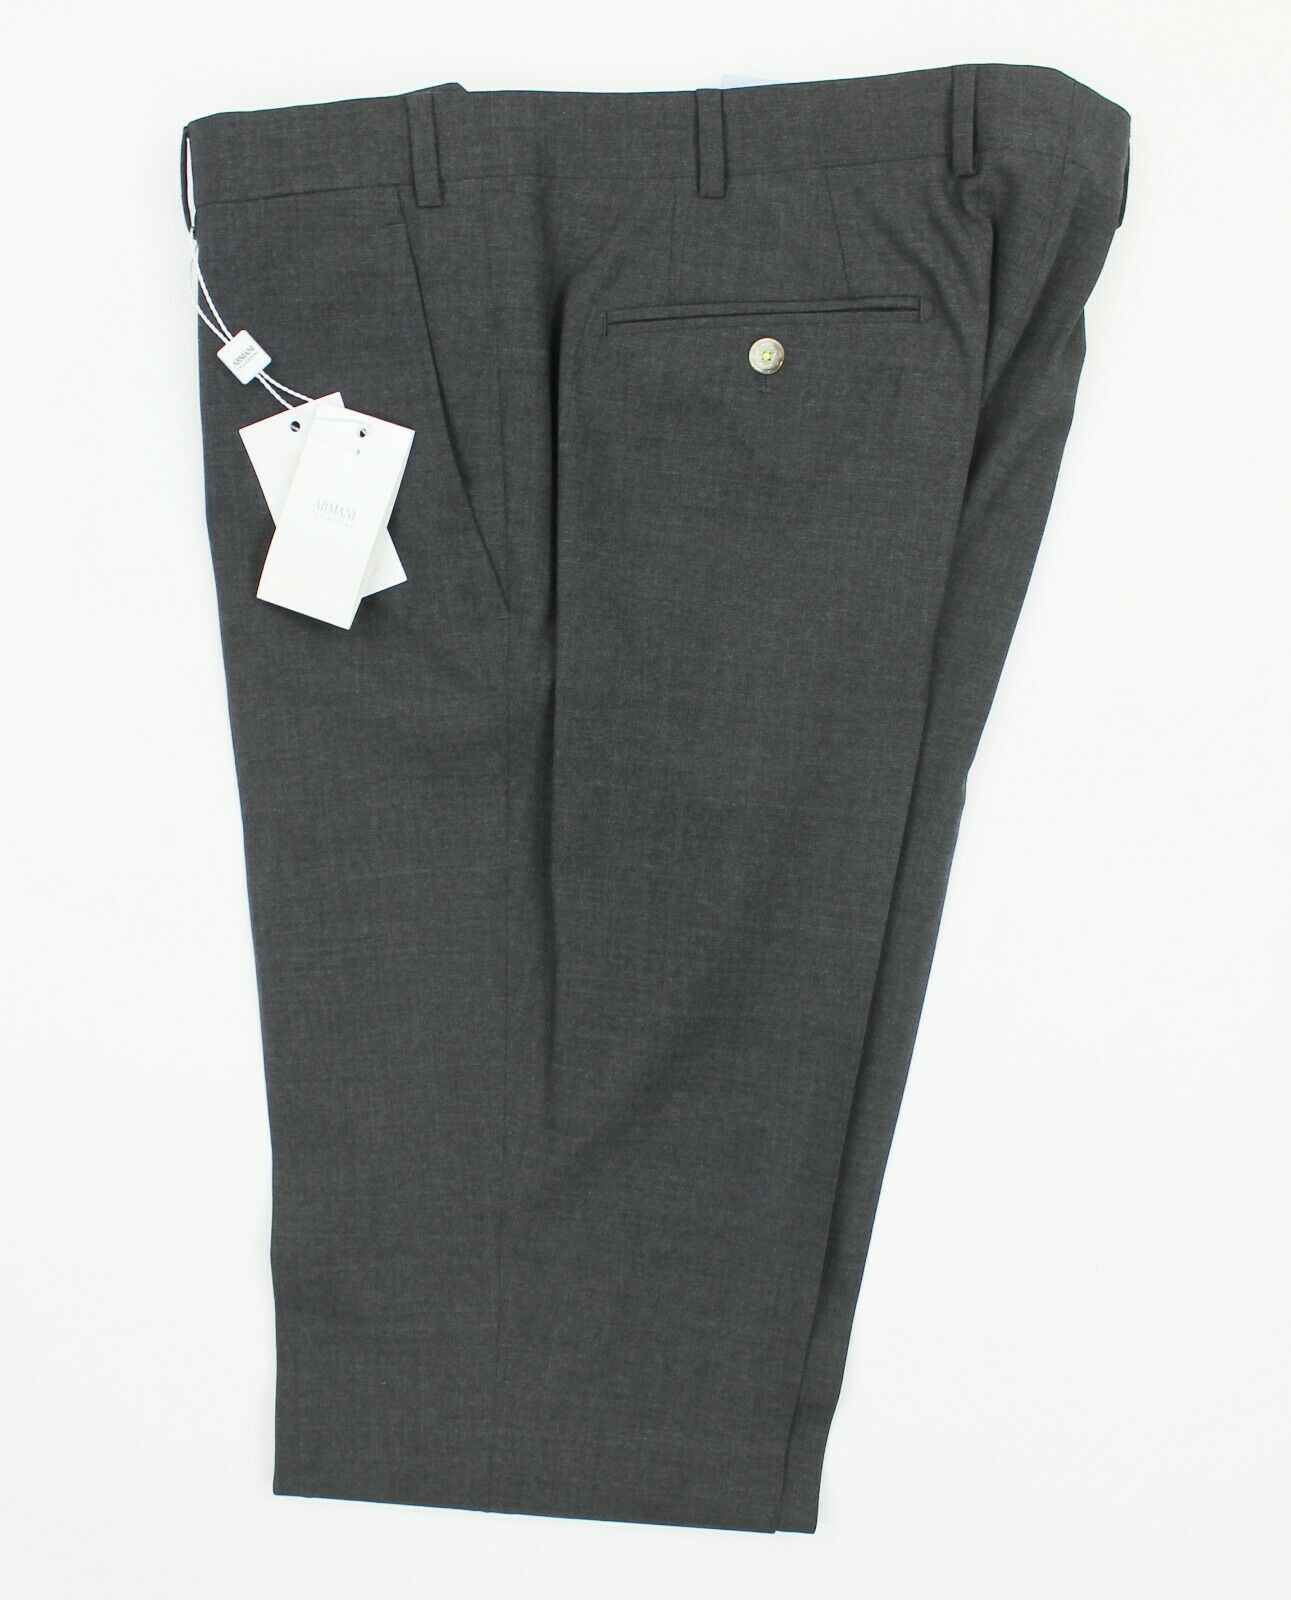 Emporio Armani - Wool Slim Trousers in Grey - W32 L36 -  RRP